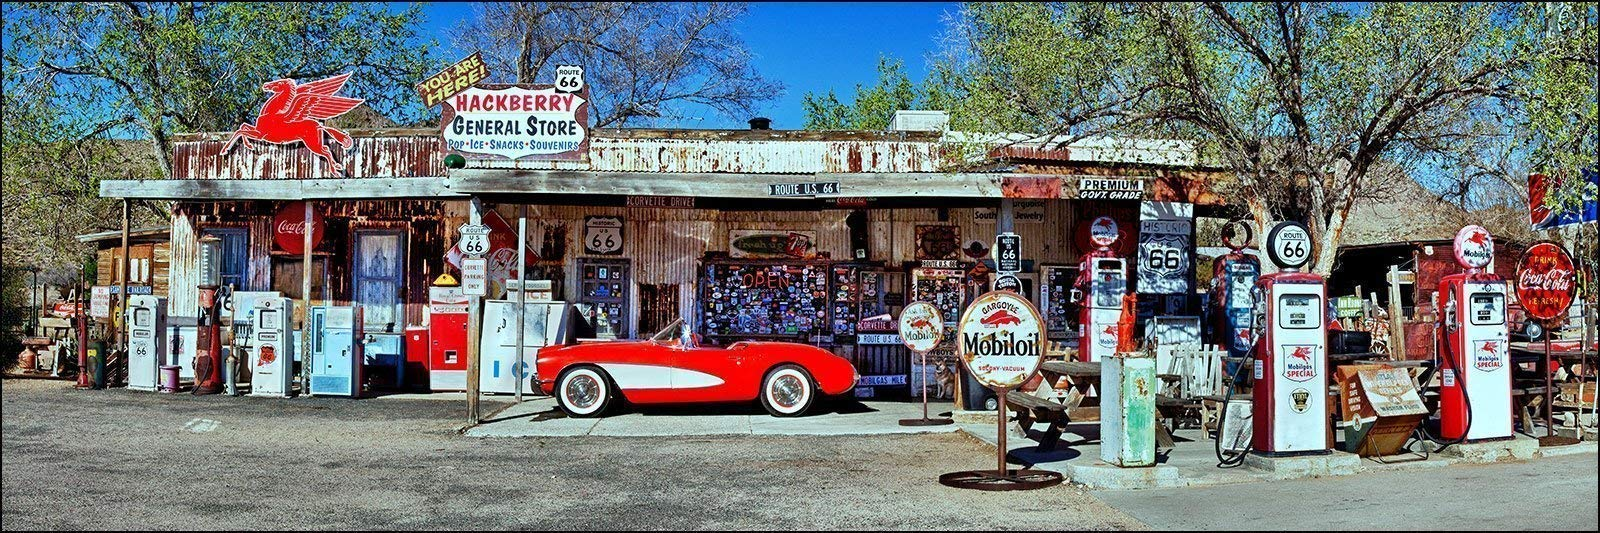 12 x 36 inch panoramic wall art photograph of red vintage corvette and gas station pumps on Rt66 in Hackberry, Arizona.